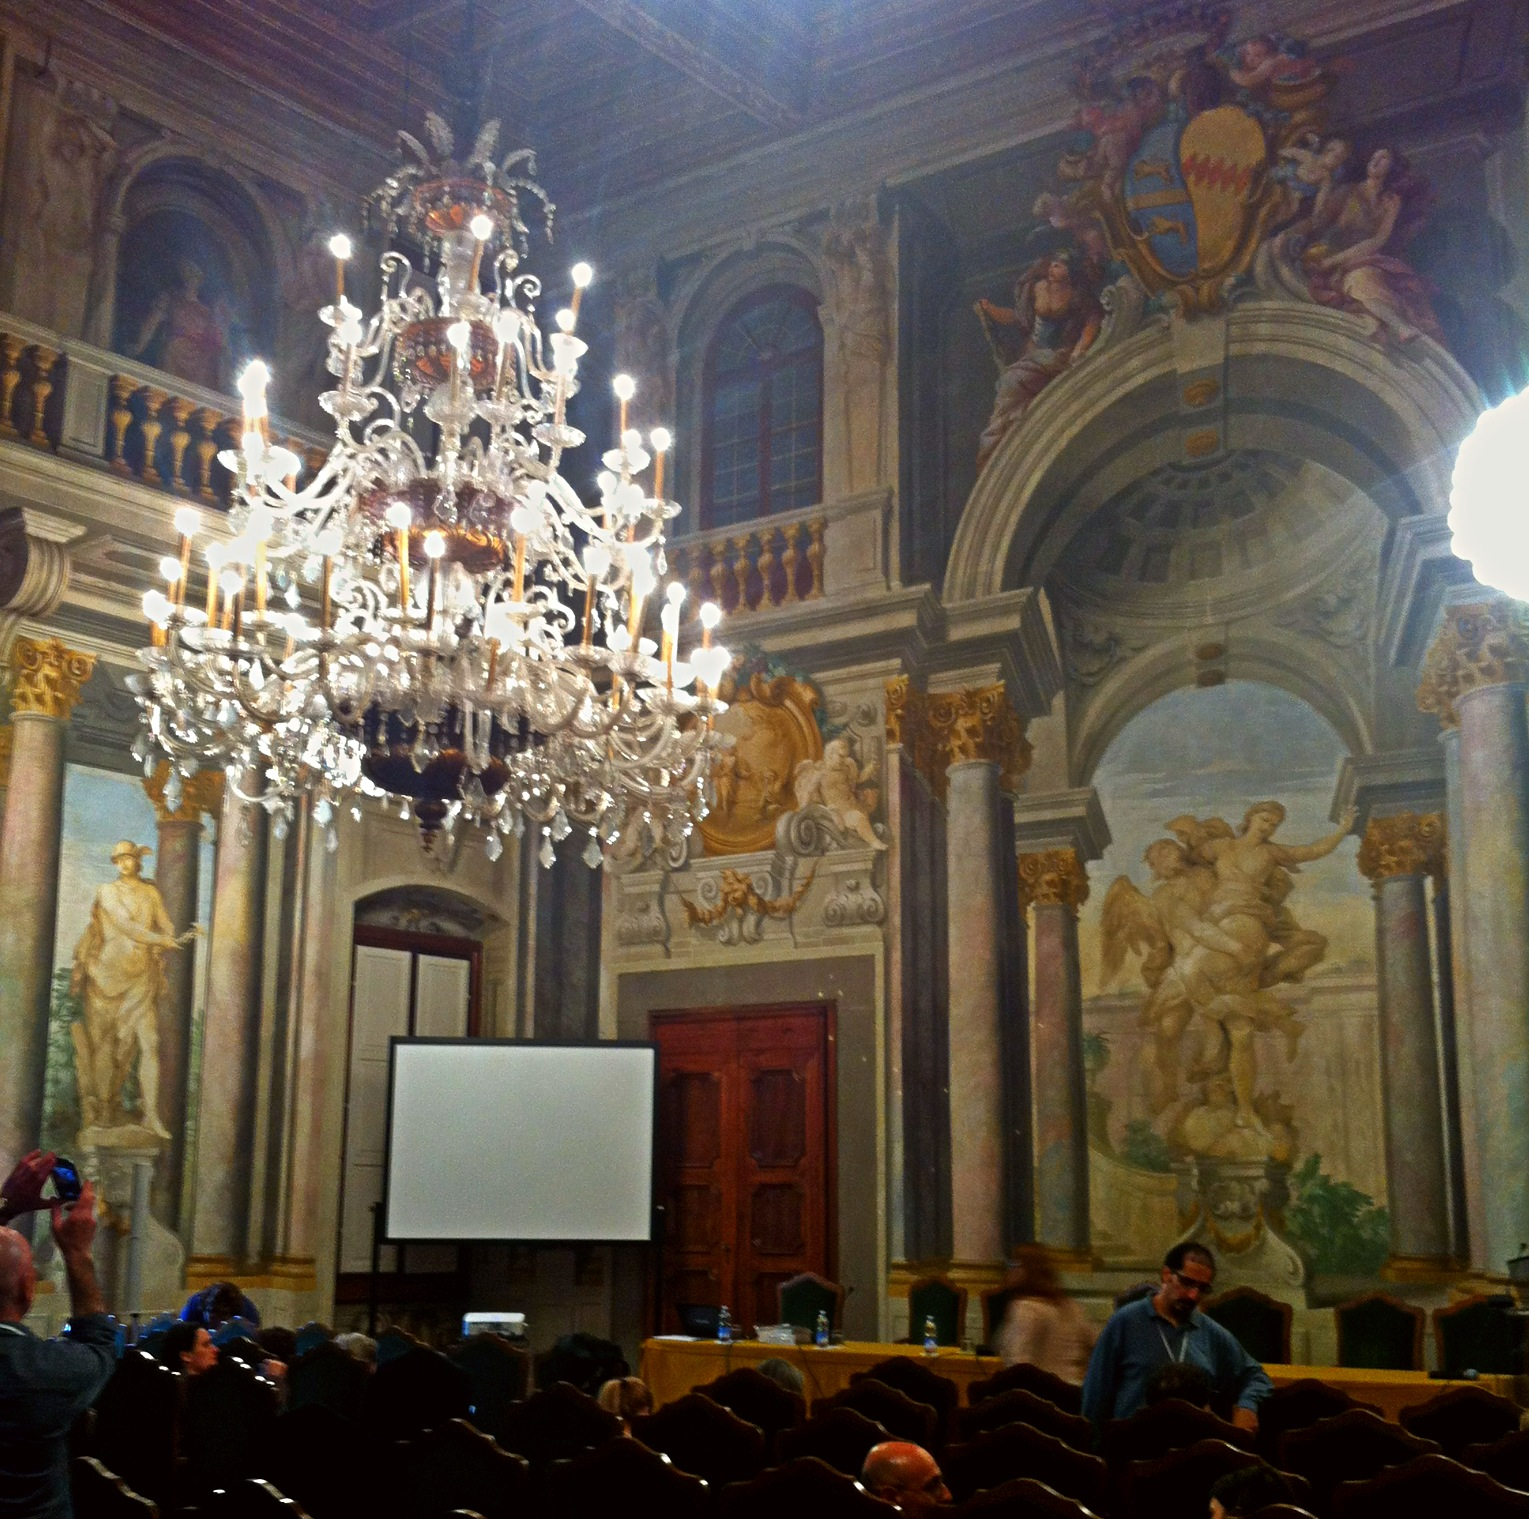 Chandelier in Banca CR Firence, Florence